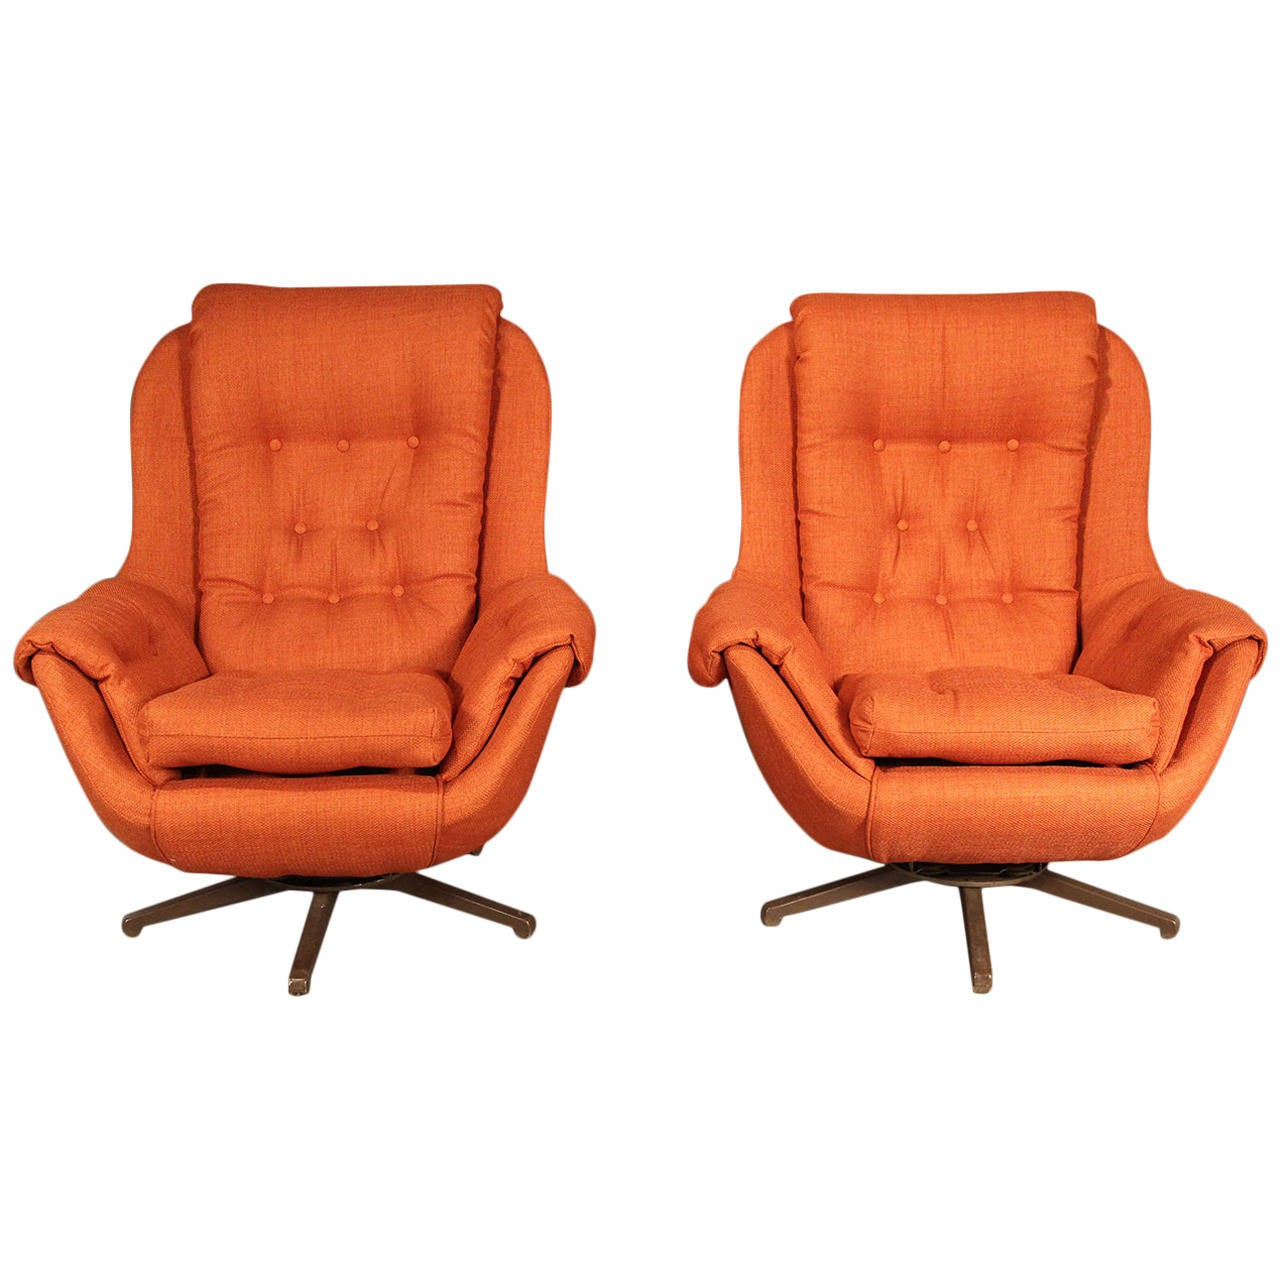 swivel chairs for sale portable tripod folding pair of lounge at 1stdibs